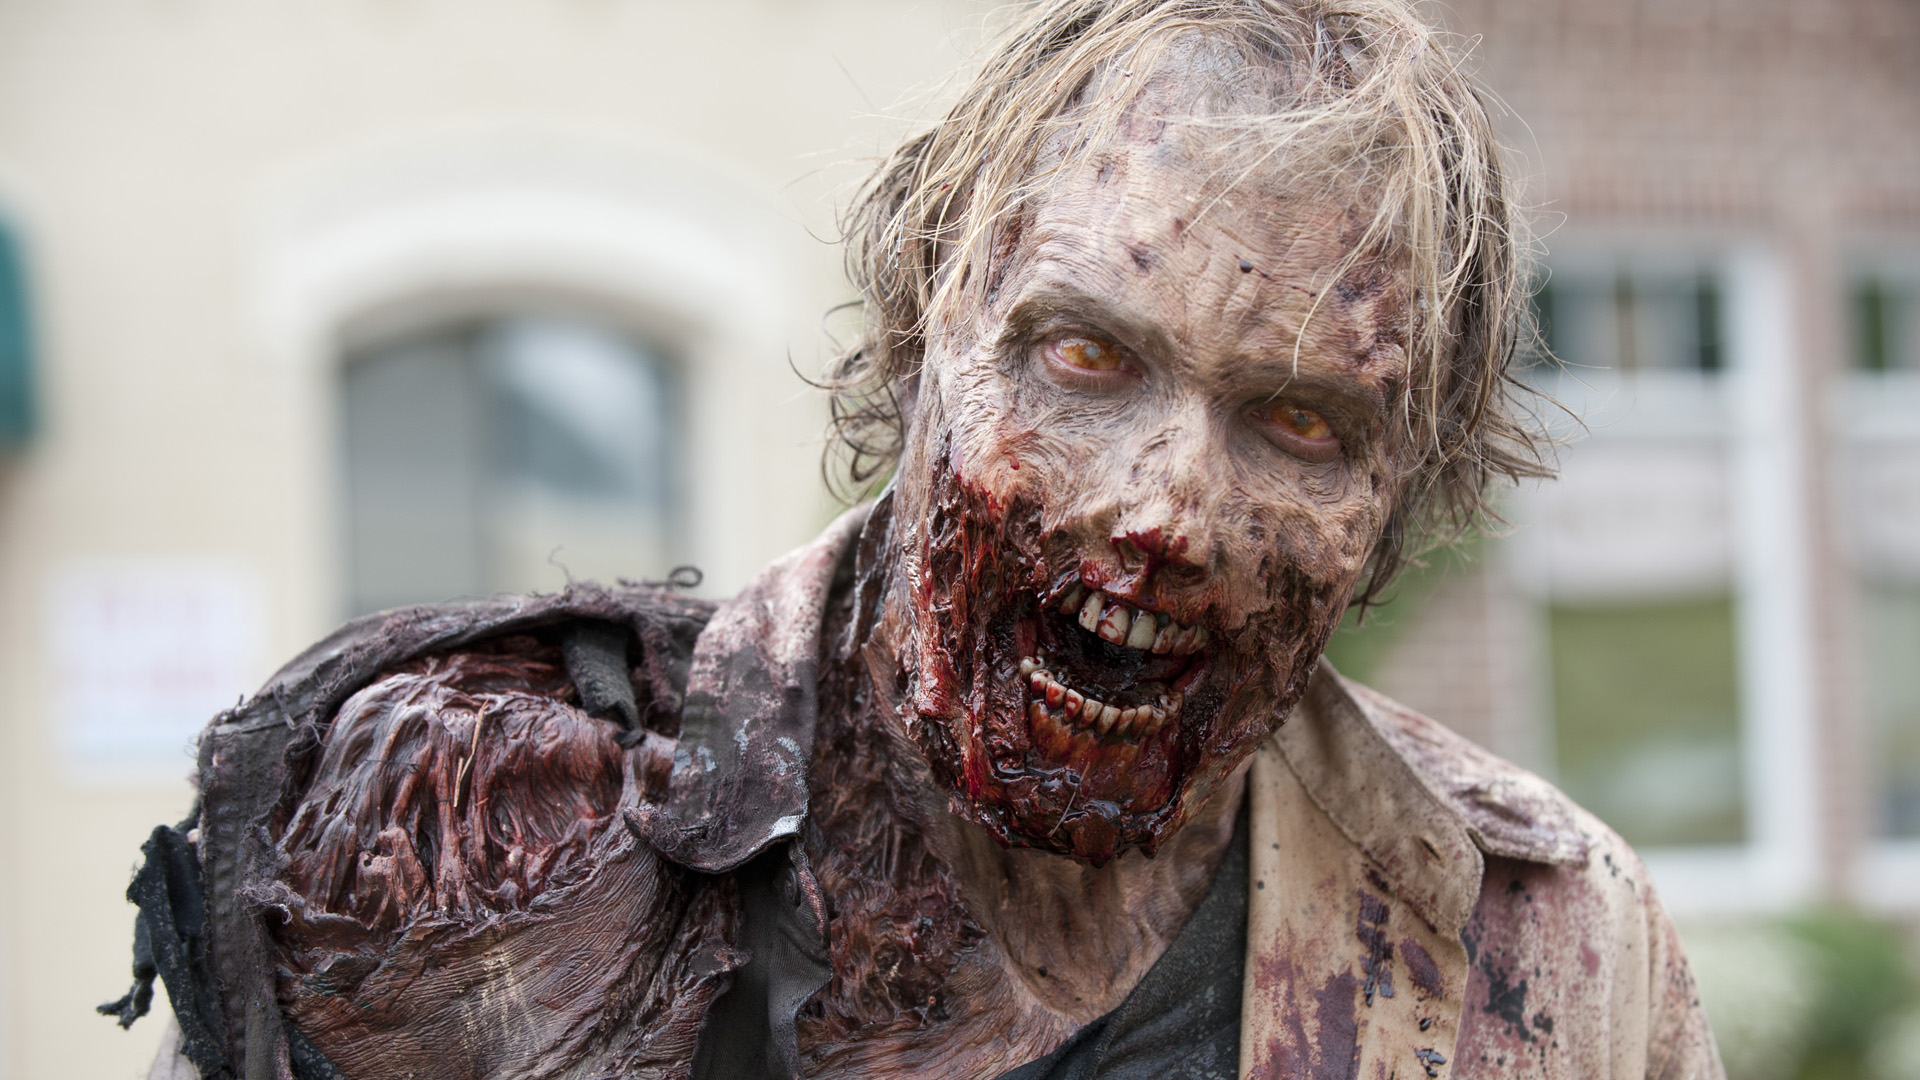 Image d'un zombie de la série culte The Walking Dead